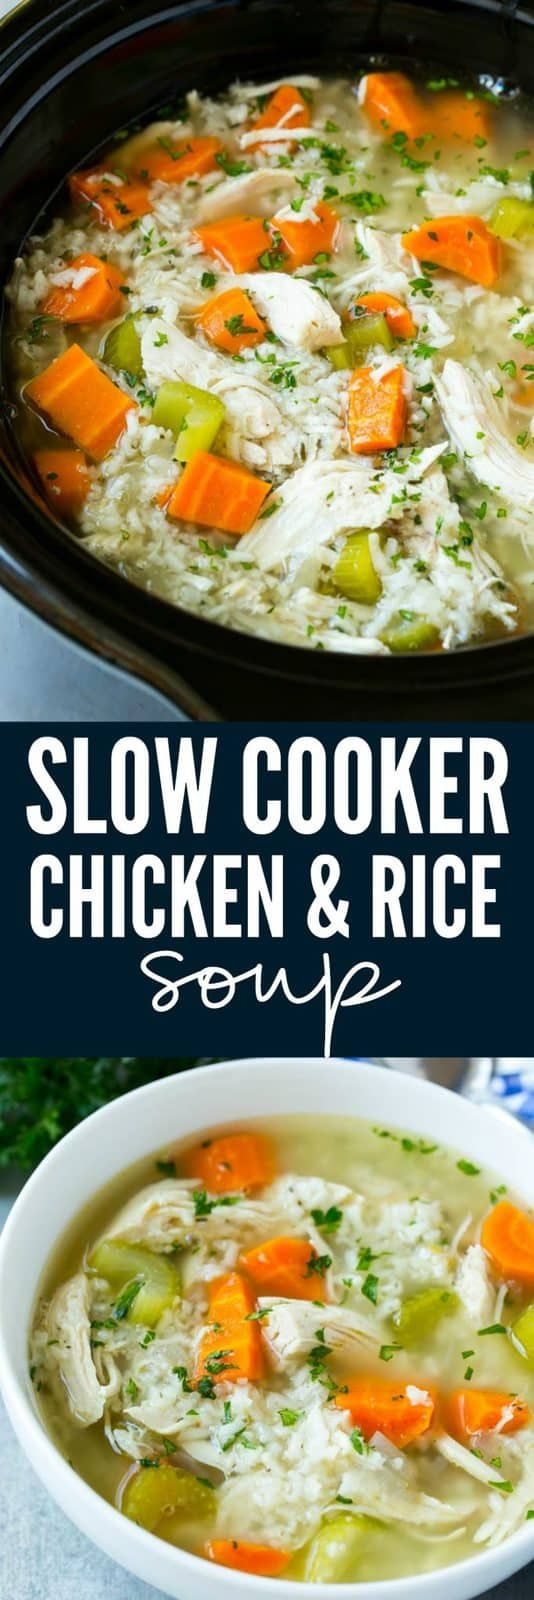 Slow Cooker Chicken and Rice Soup #ricecookermeals